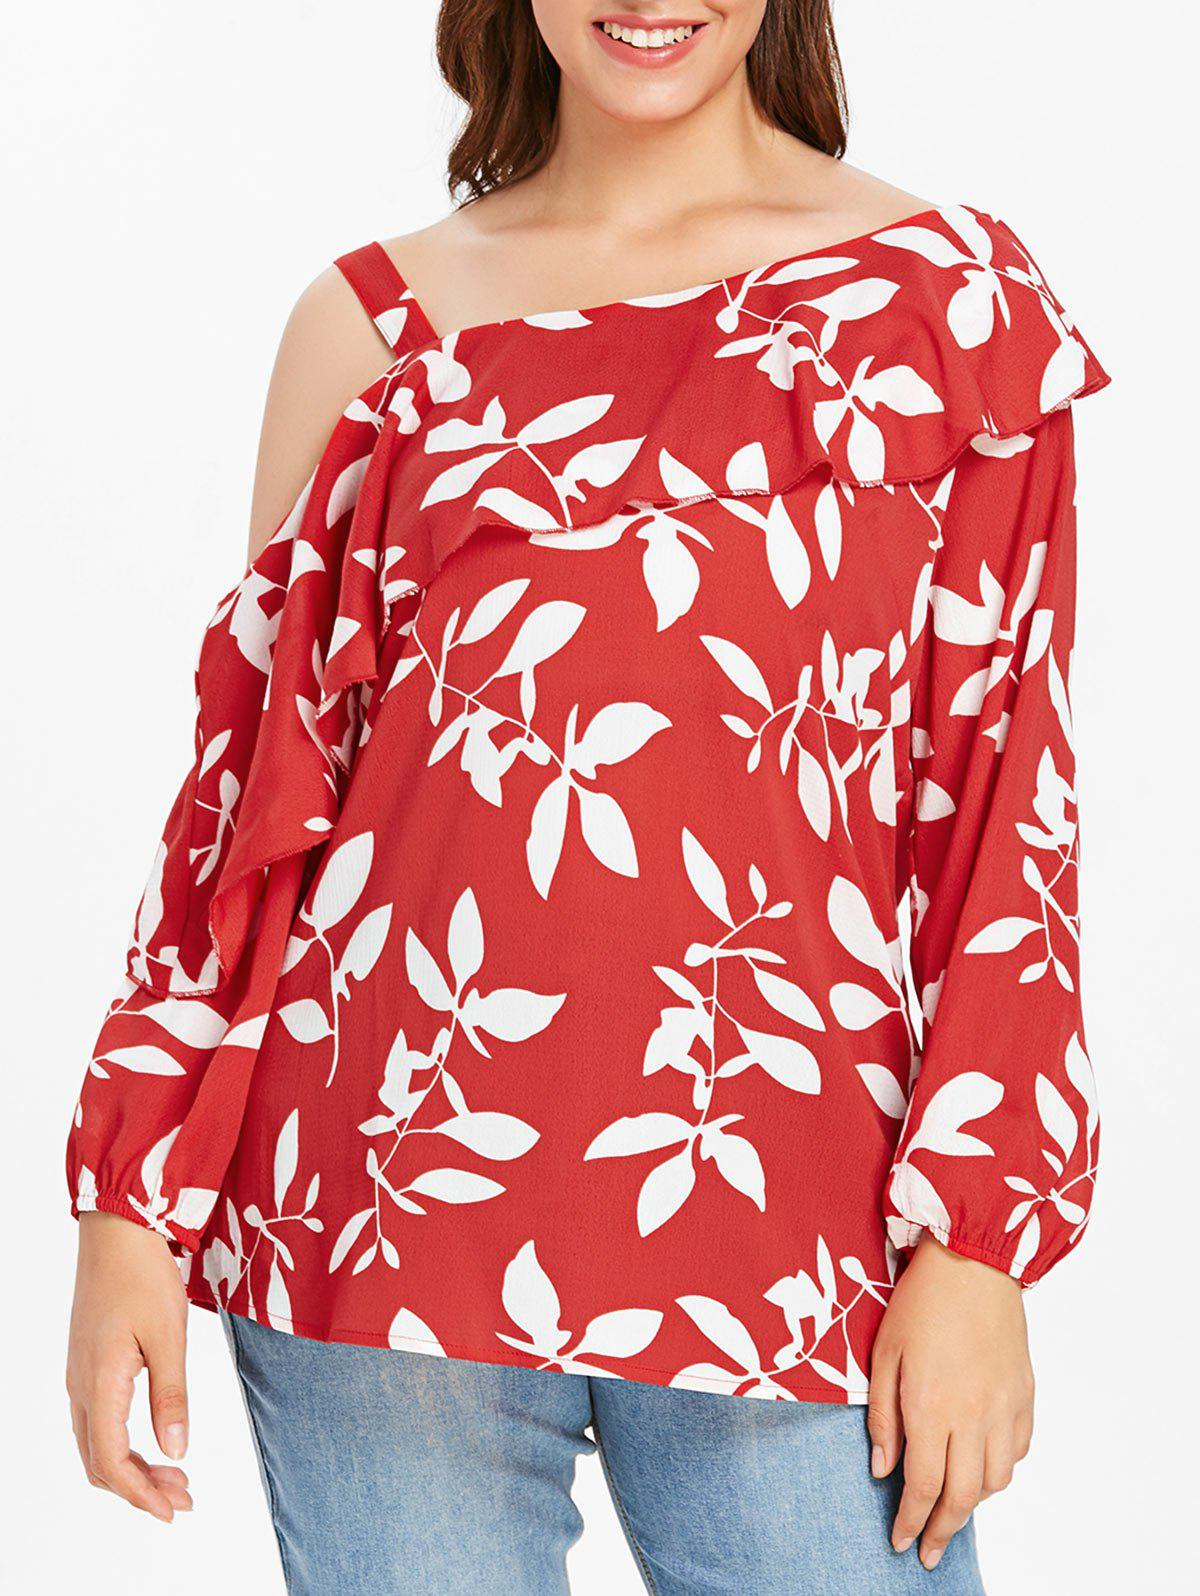 Plus Size Flounce Floral Top with Skew Neck